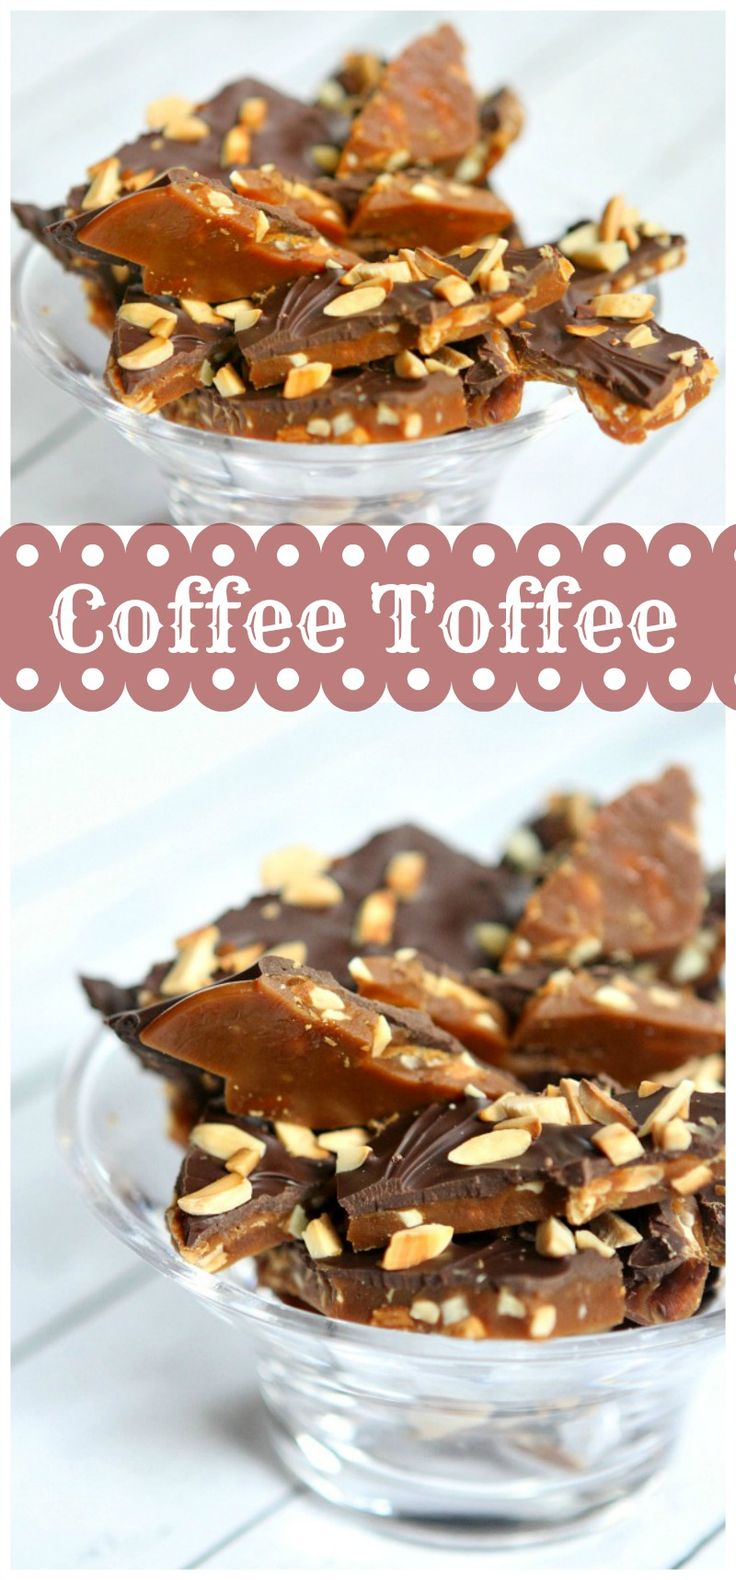 Coffee Toffee : a classic chocolate-almond toffee recipe with a hint of coffee flavor.